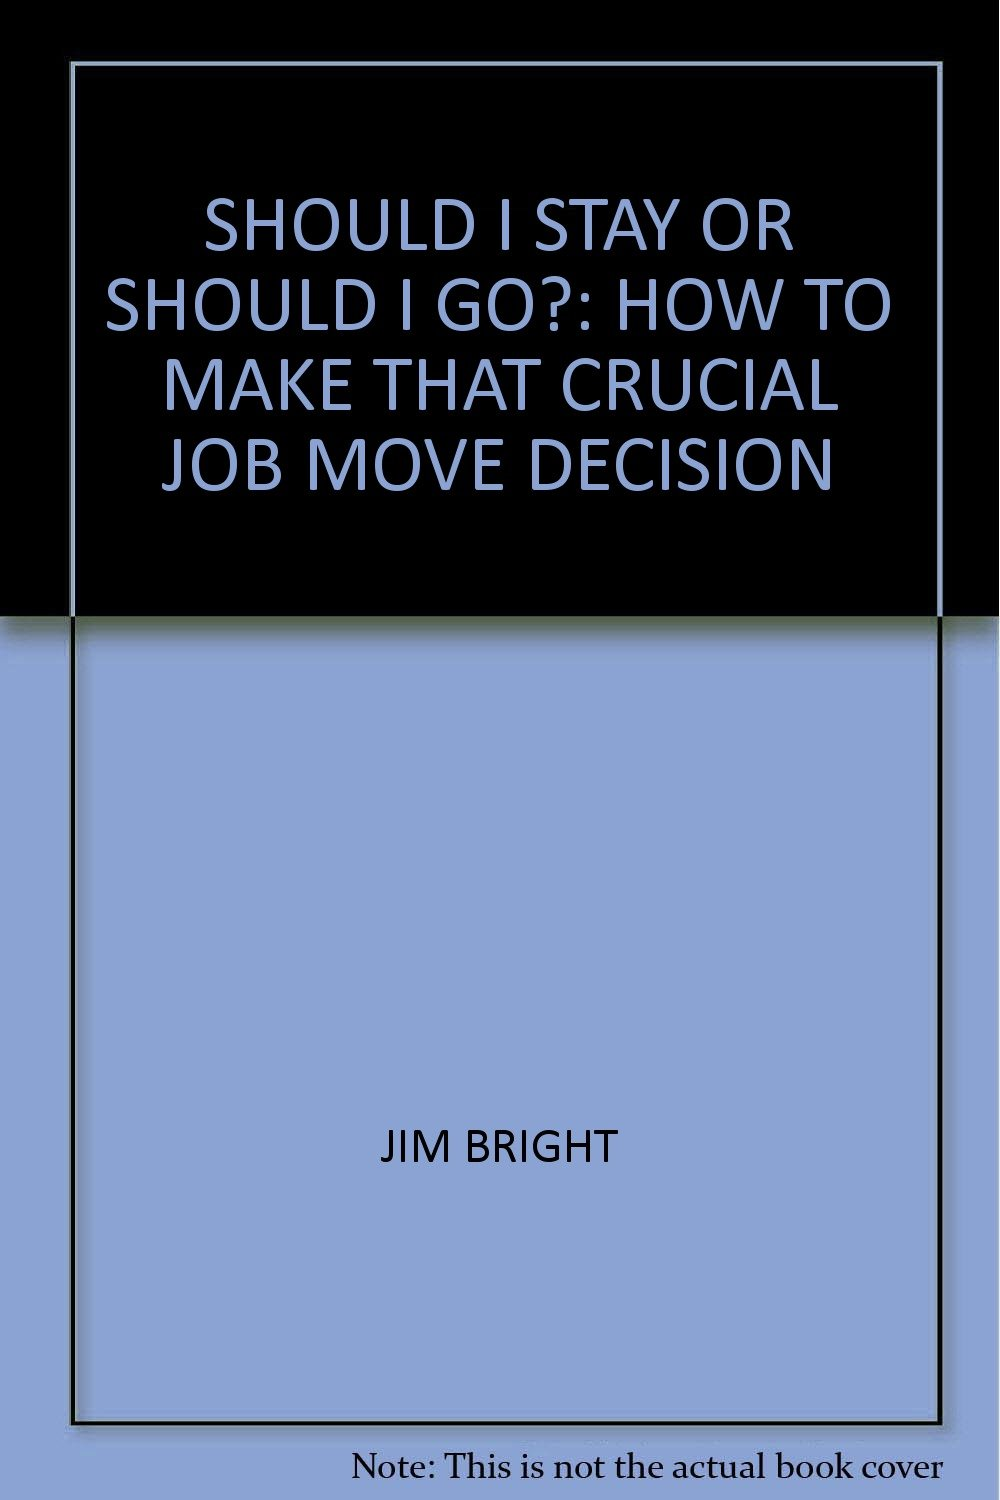 Download SHOULD I STAY OR SHOULD I GO?: HOW TO MAKE THAT CRUCIAL JOB MOVE DECISION PDF